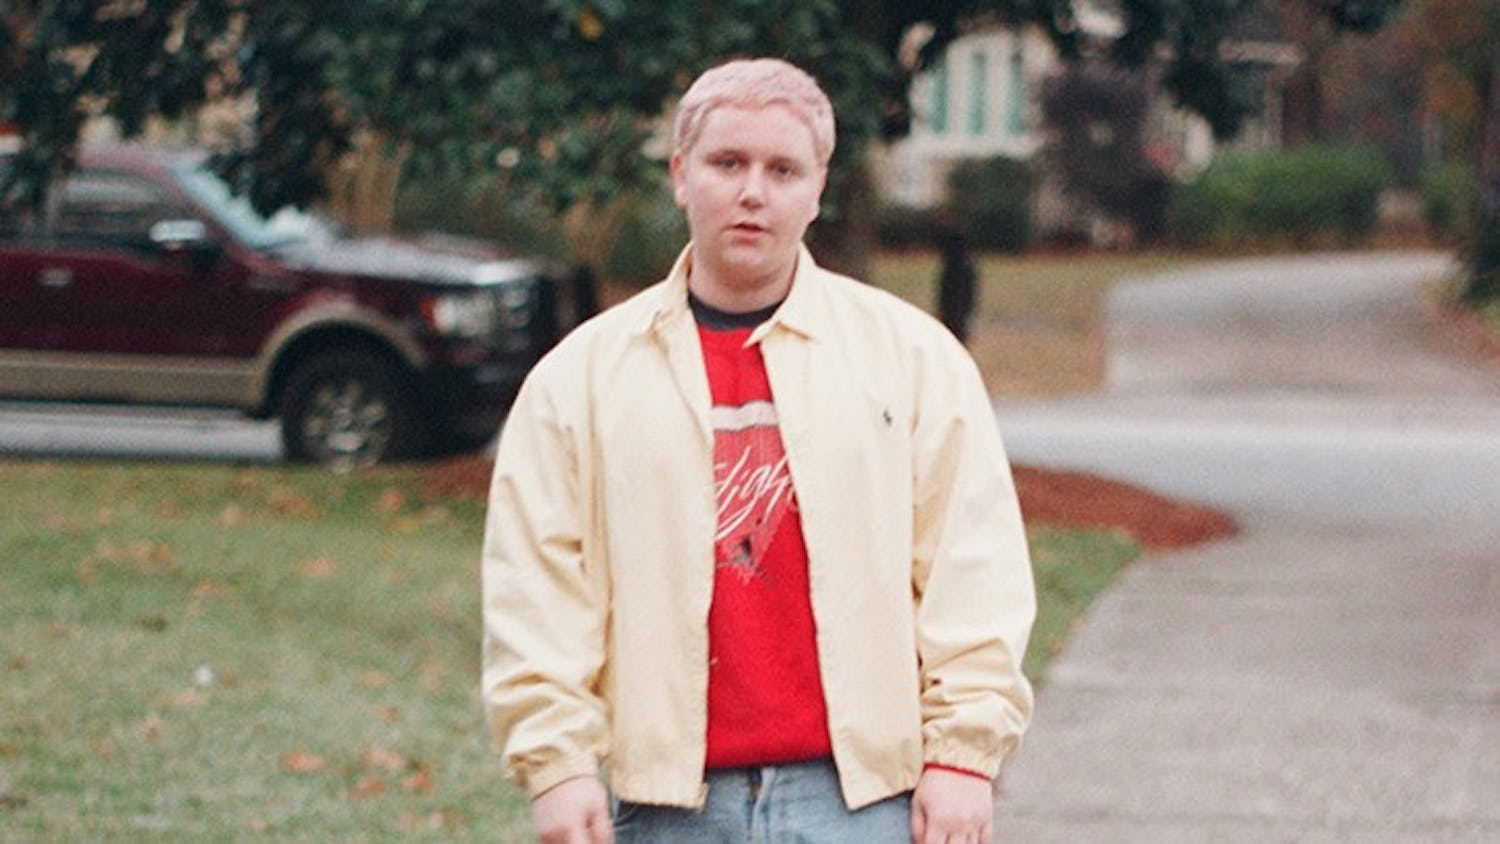 Cooper Lightsey, or Lost Coop, is a musician who strives to make original music. He does not want to have a quick viral moment but would rather succeed long-term.